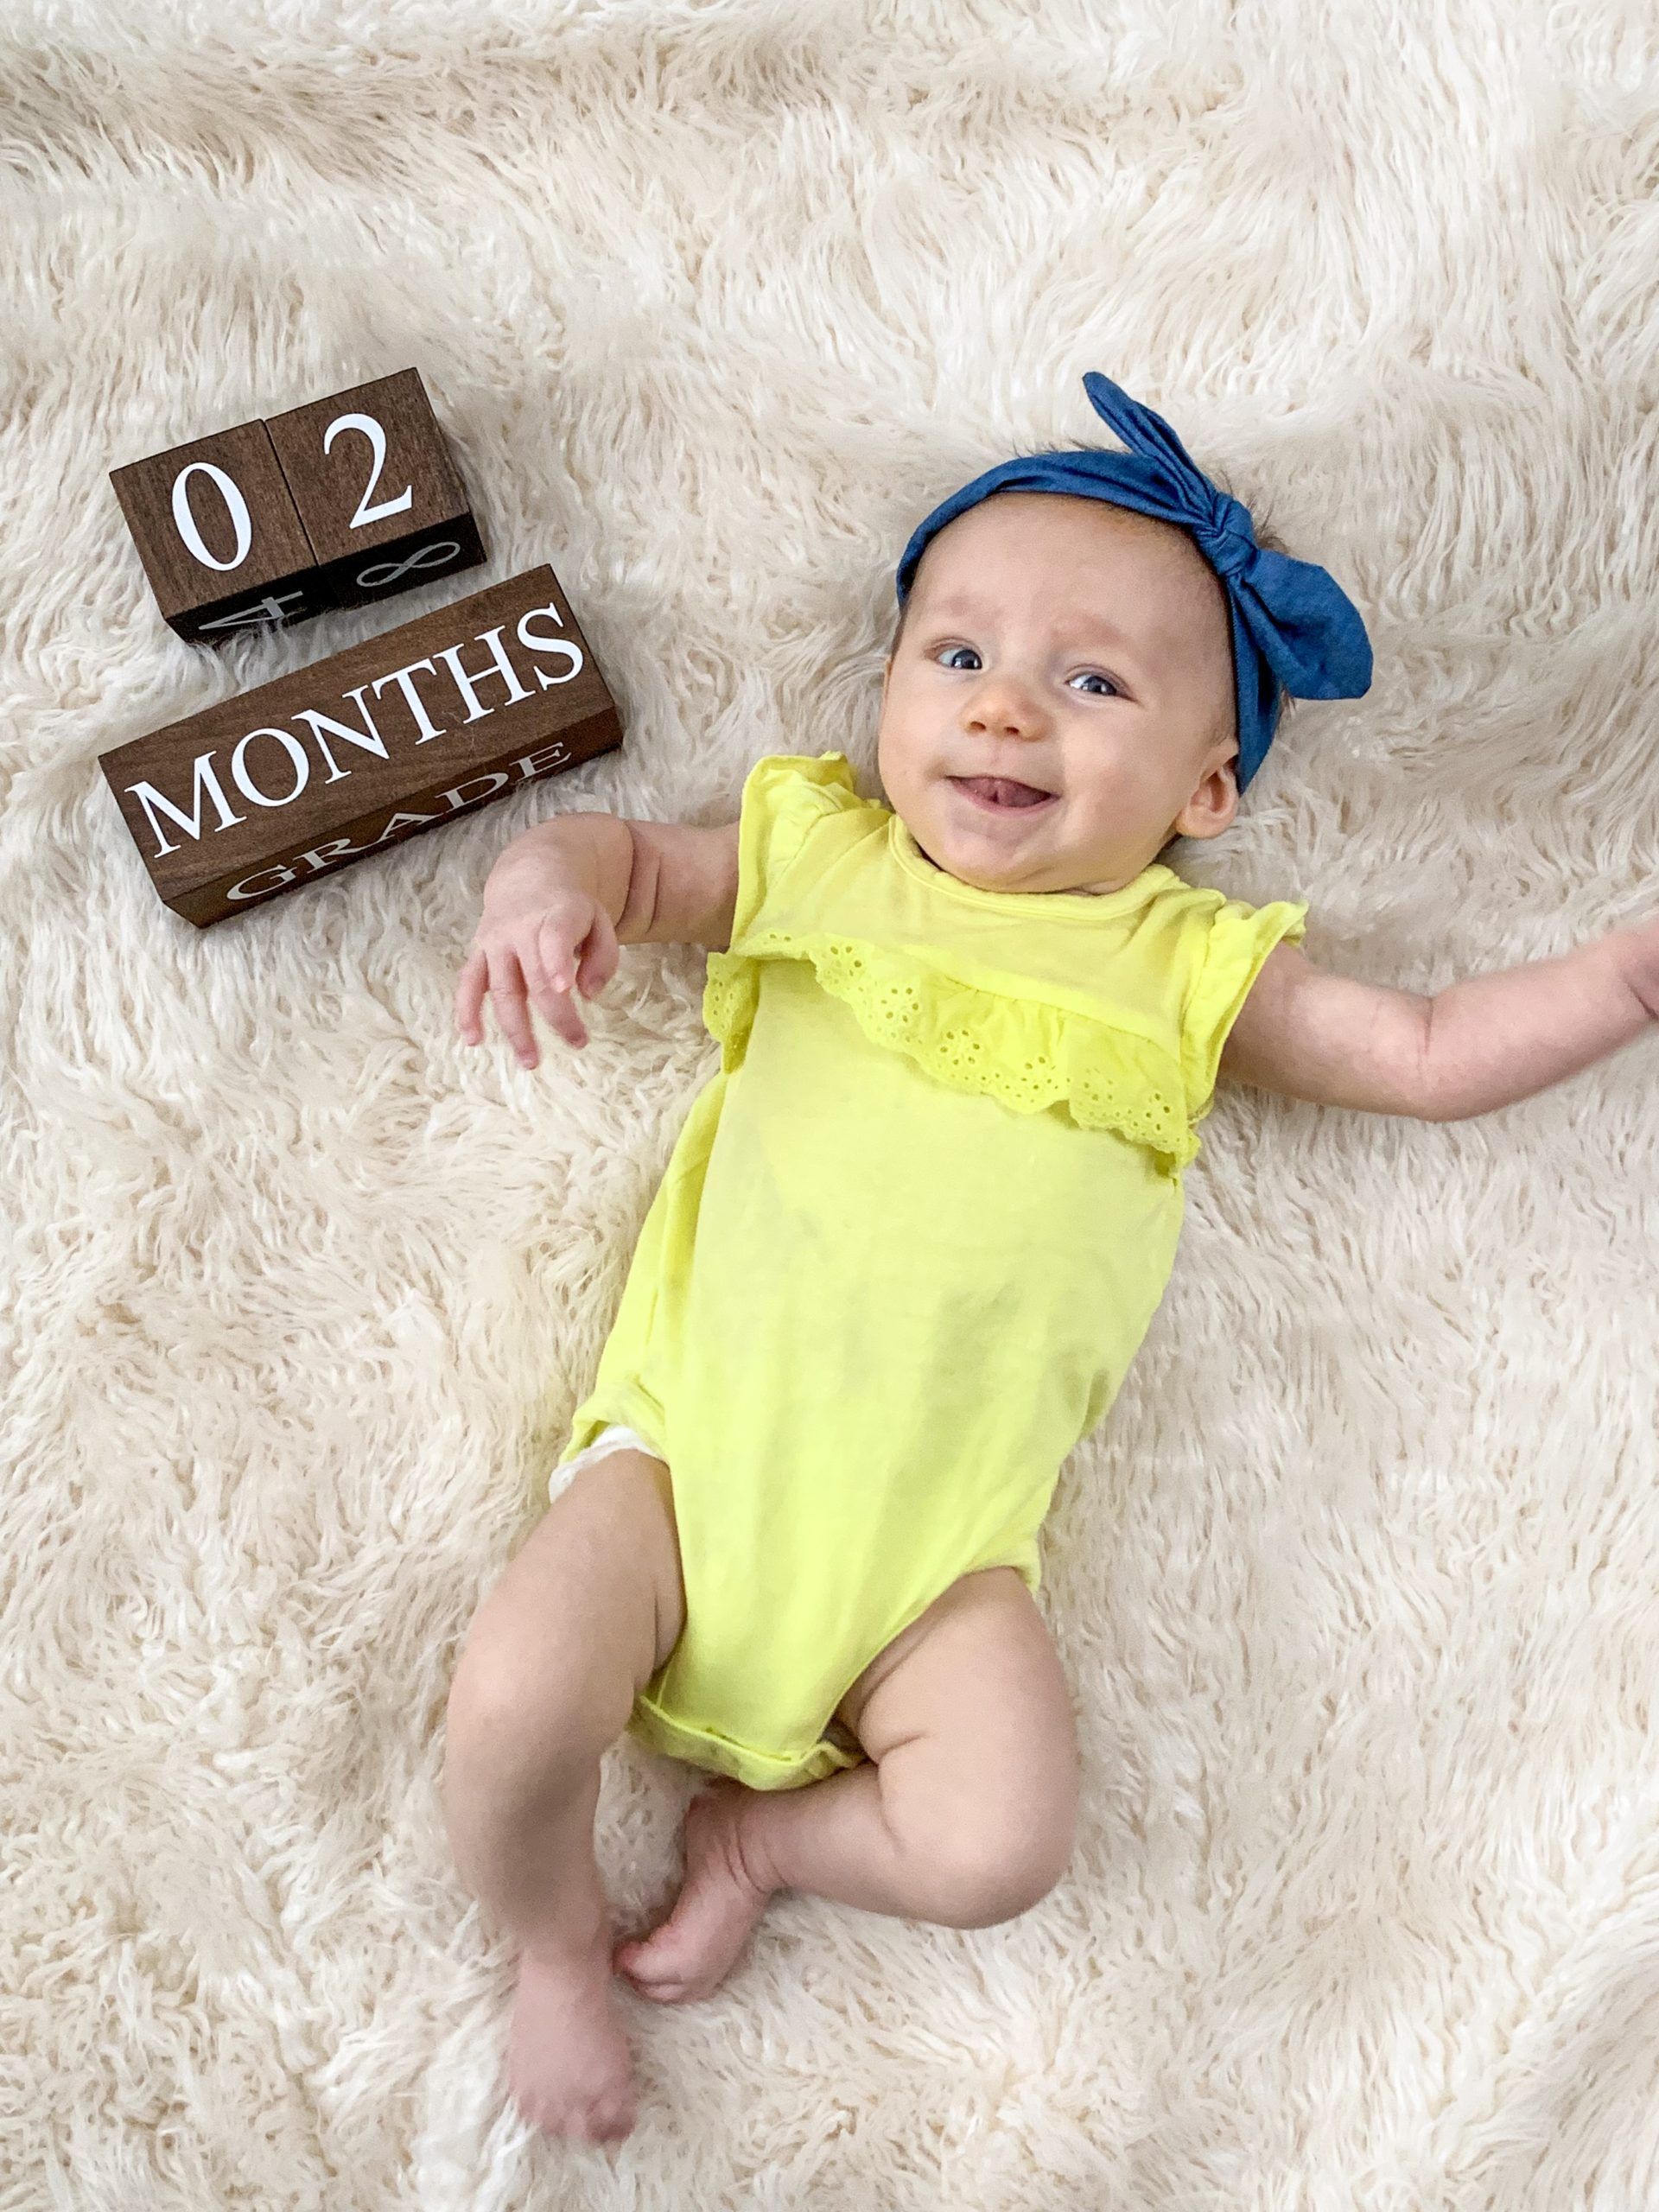 2 month baby update